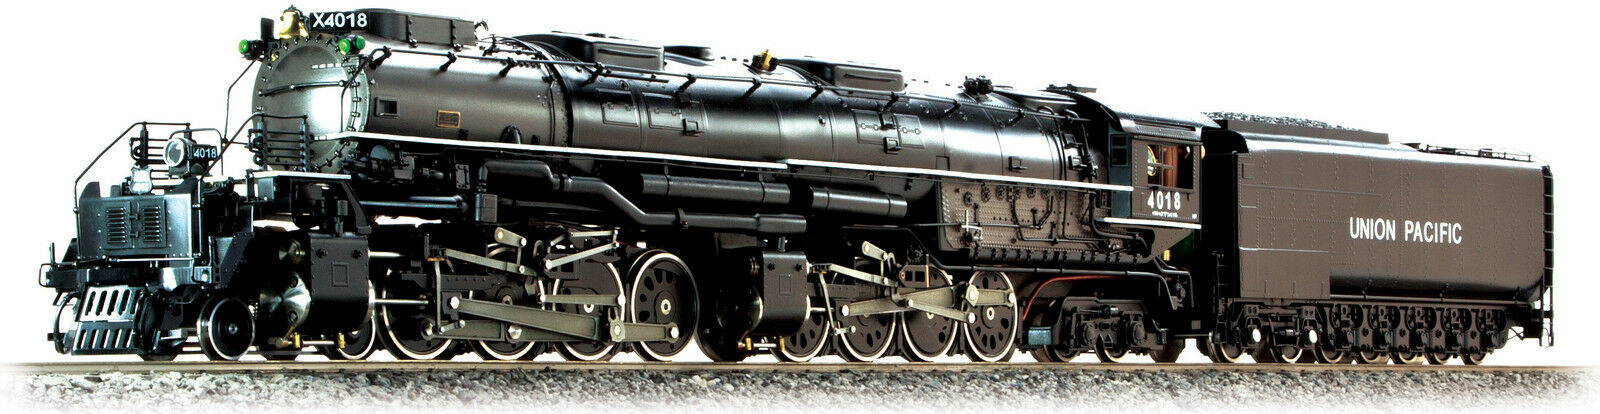 Accucraft al97-395 Union Pacific Big Boy  4018 in 1:32 Live Steam, the last ones